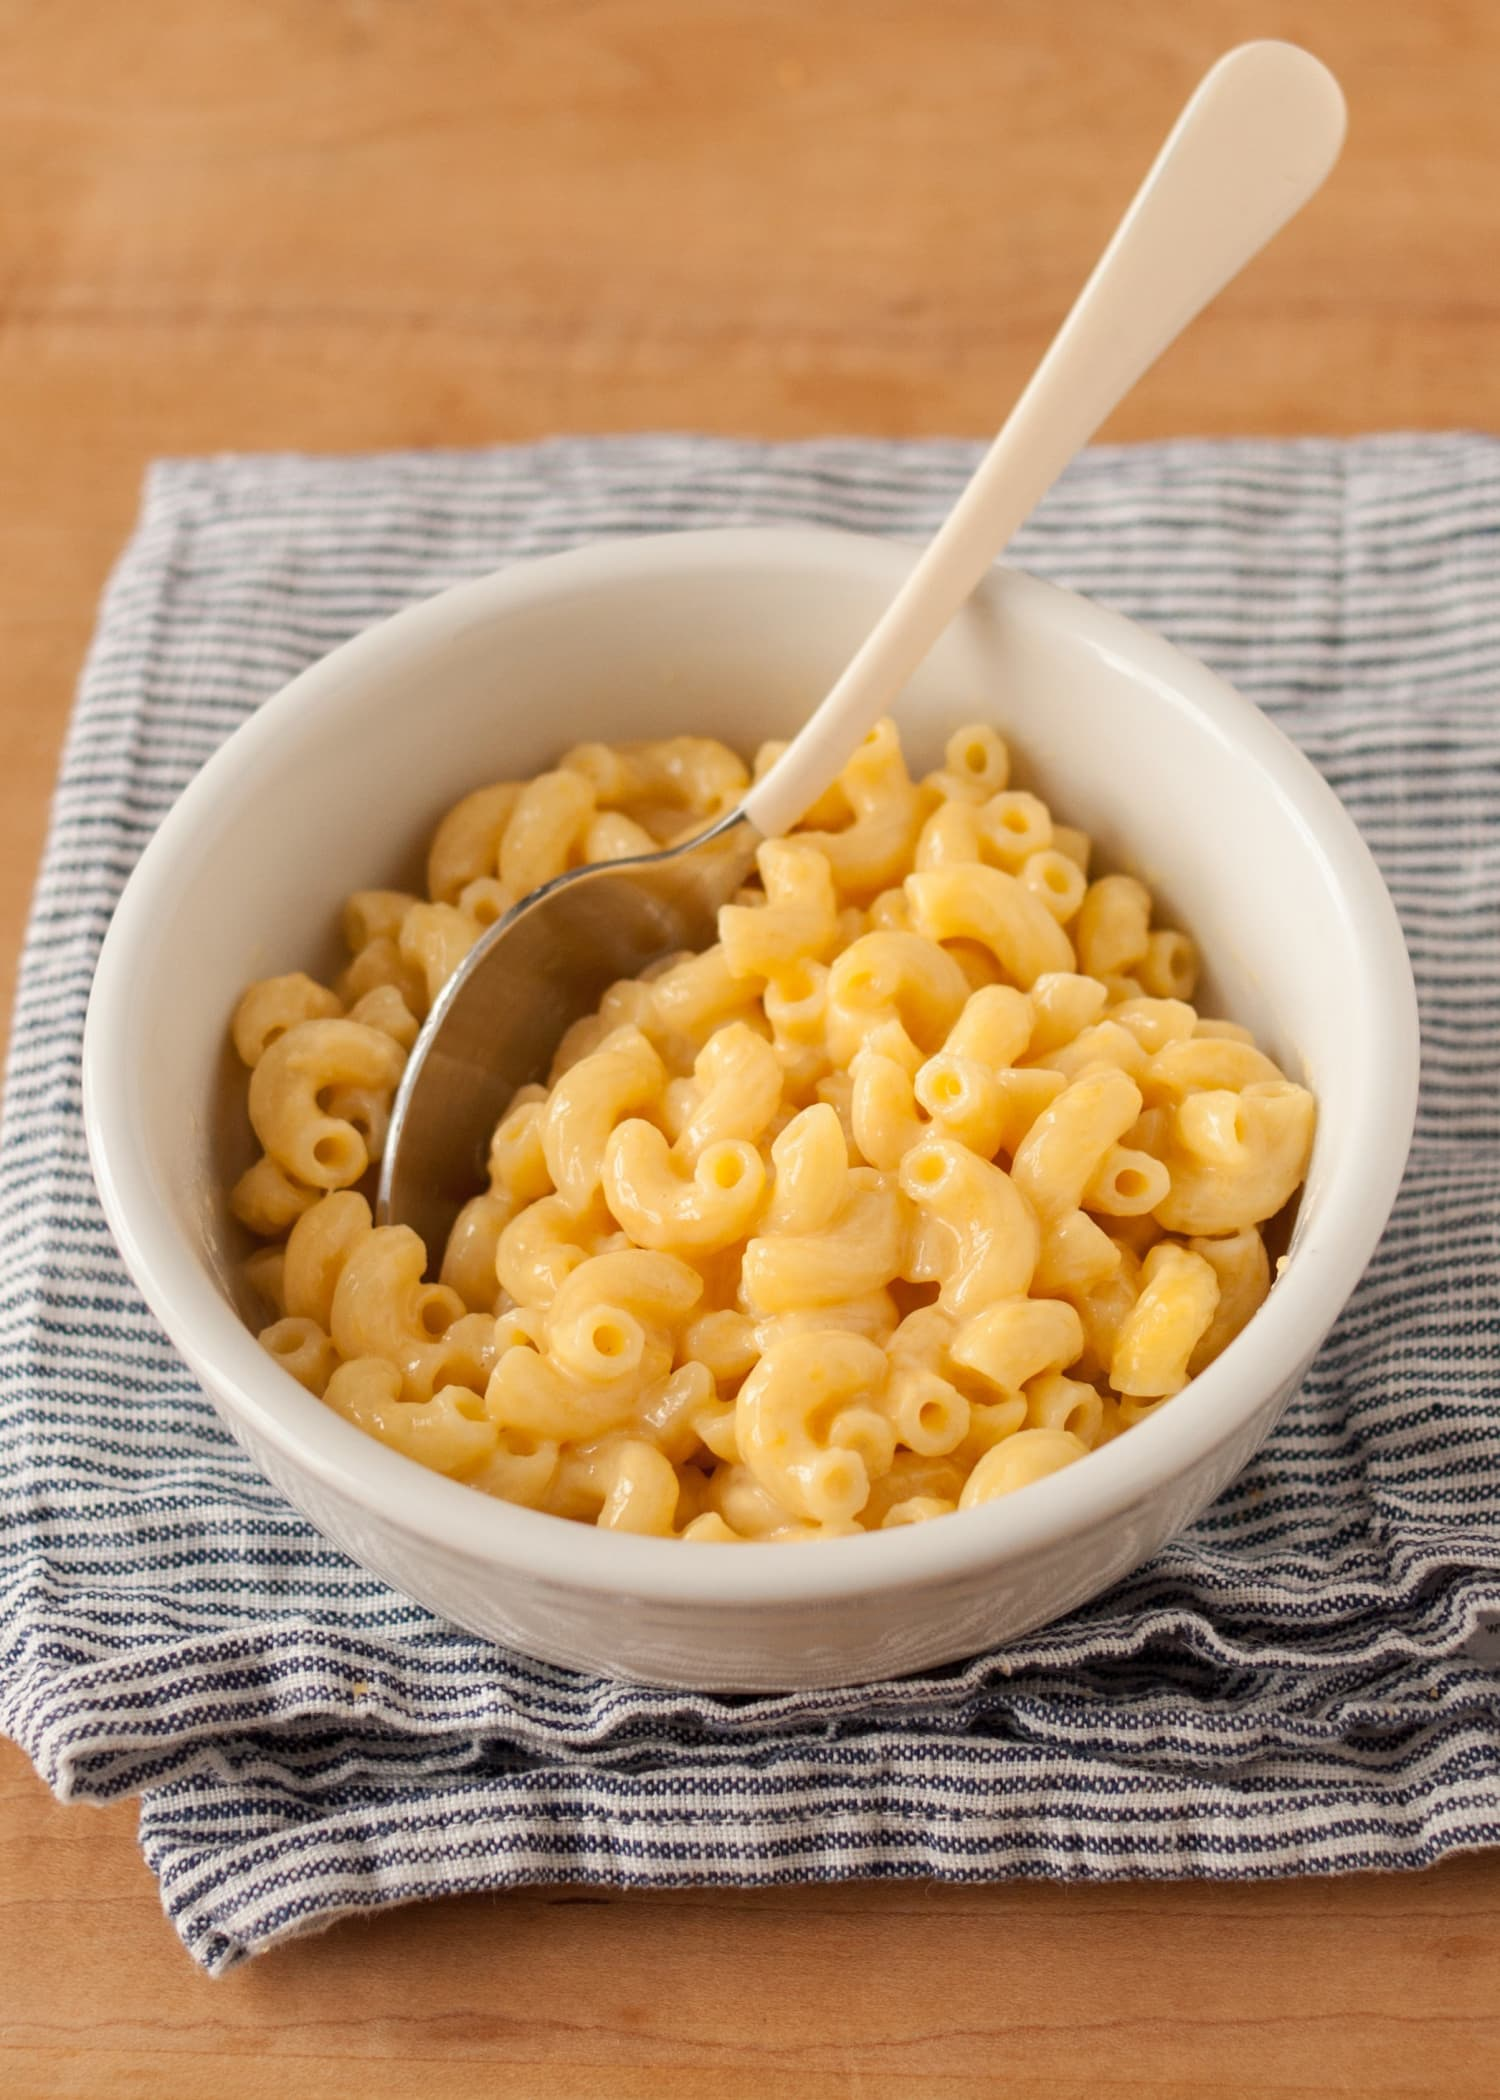 How To Make One-Bowl Microwave Macaroni and Cheese | Kitchn